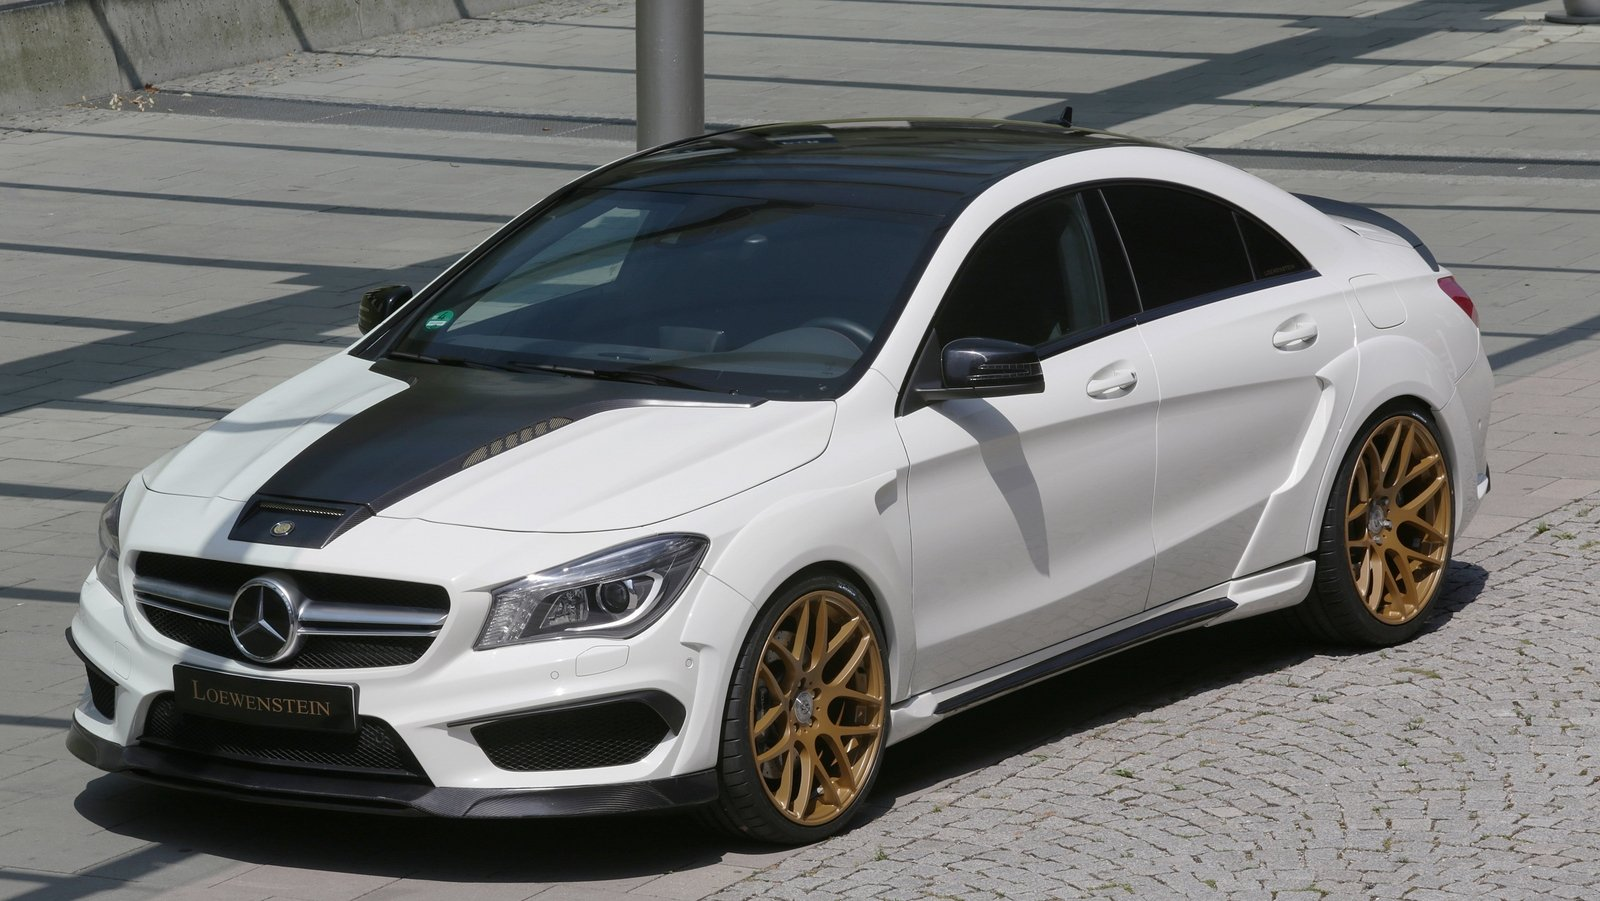 2015 Mercedes Benz Cla45 Amg By Loewenstein Review Top Speed